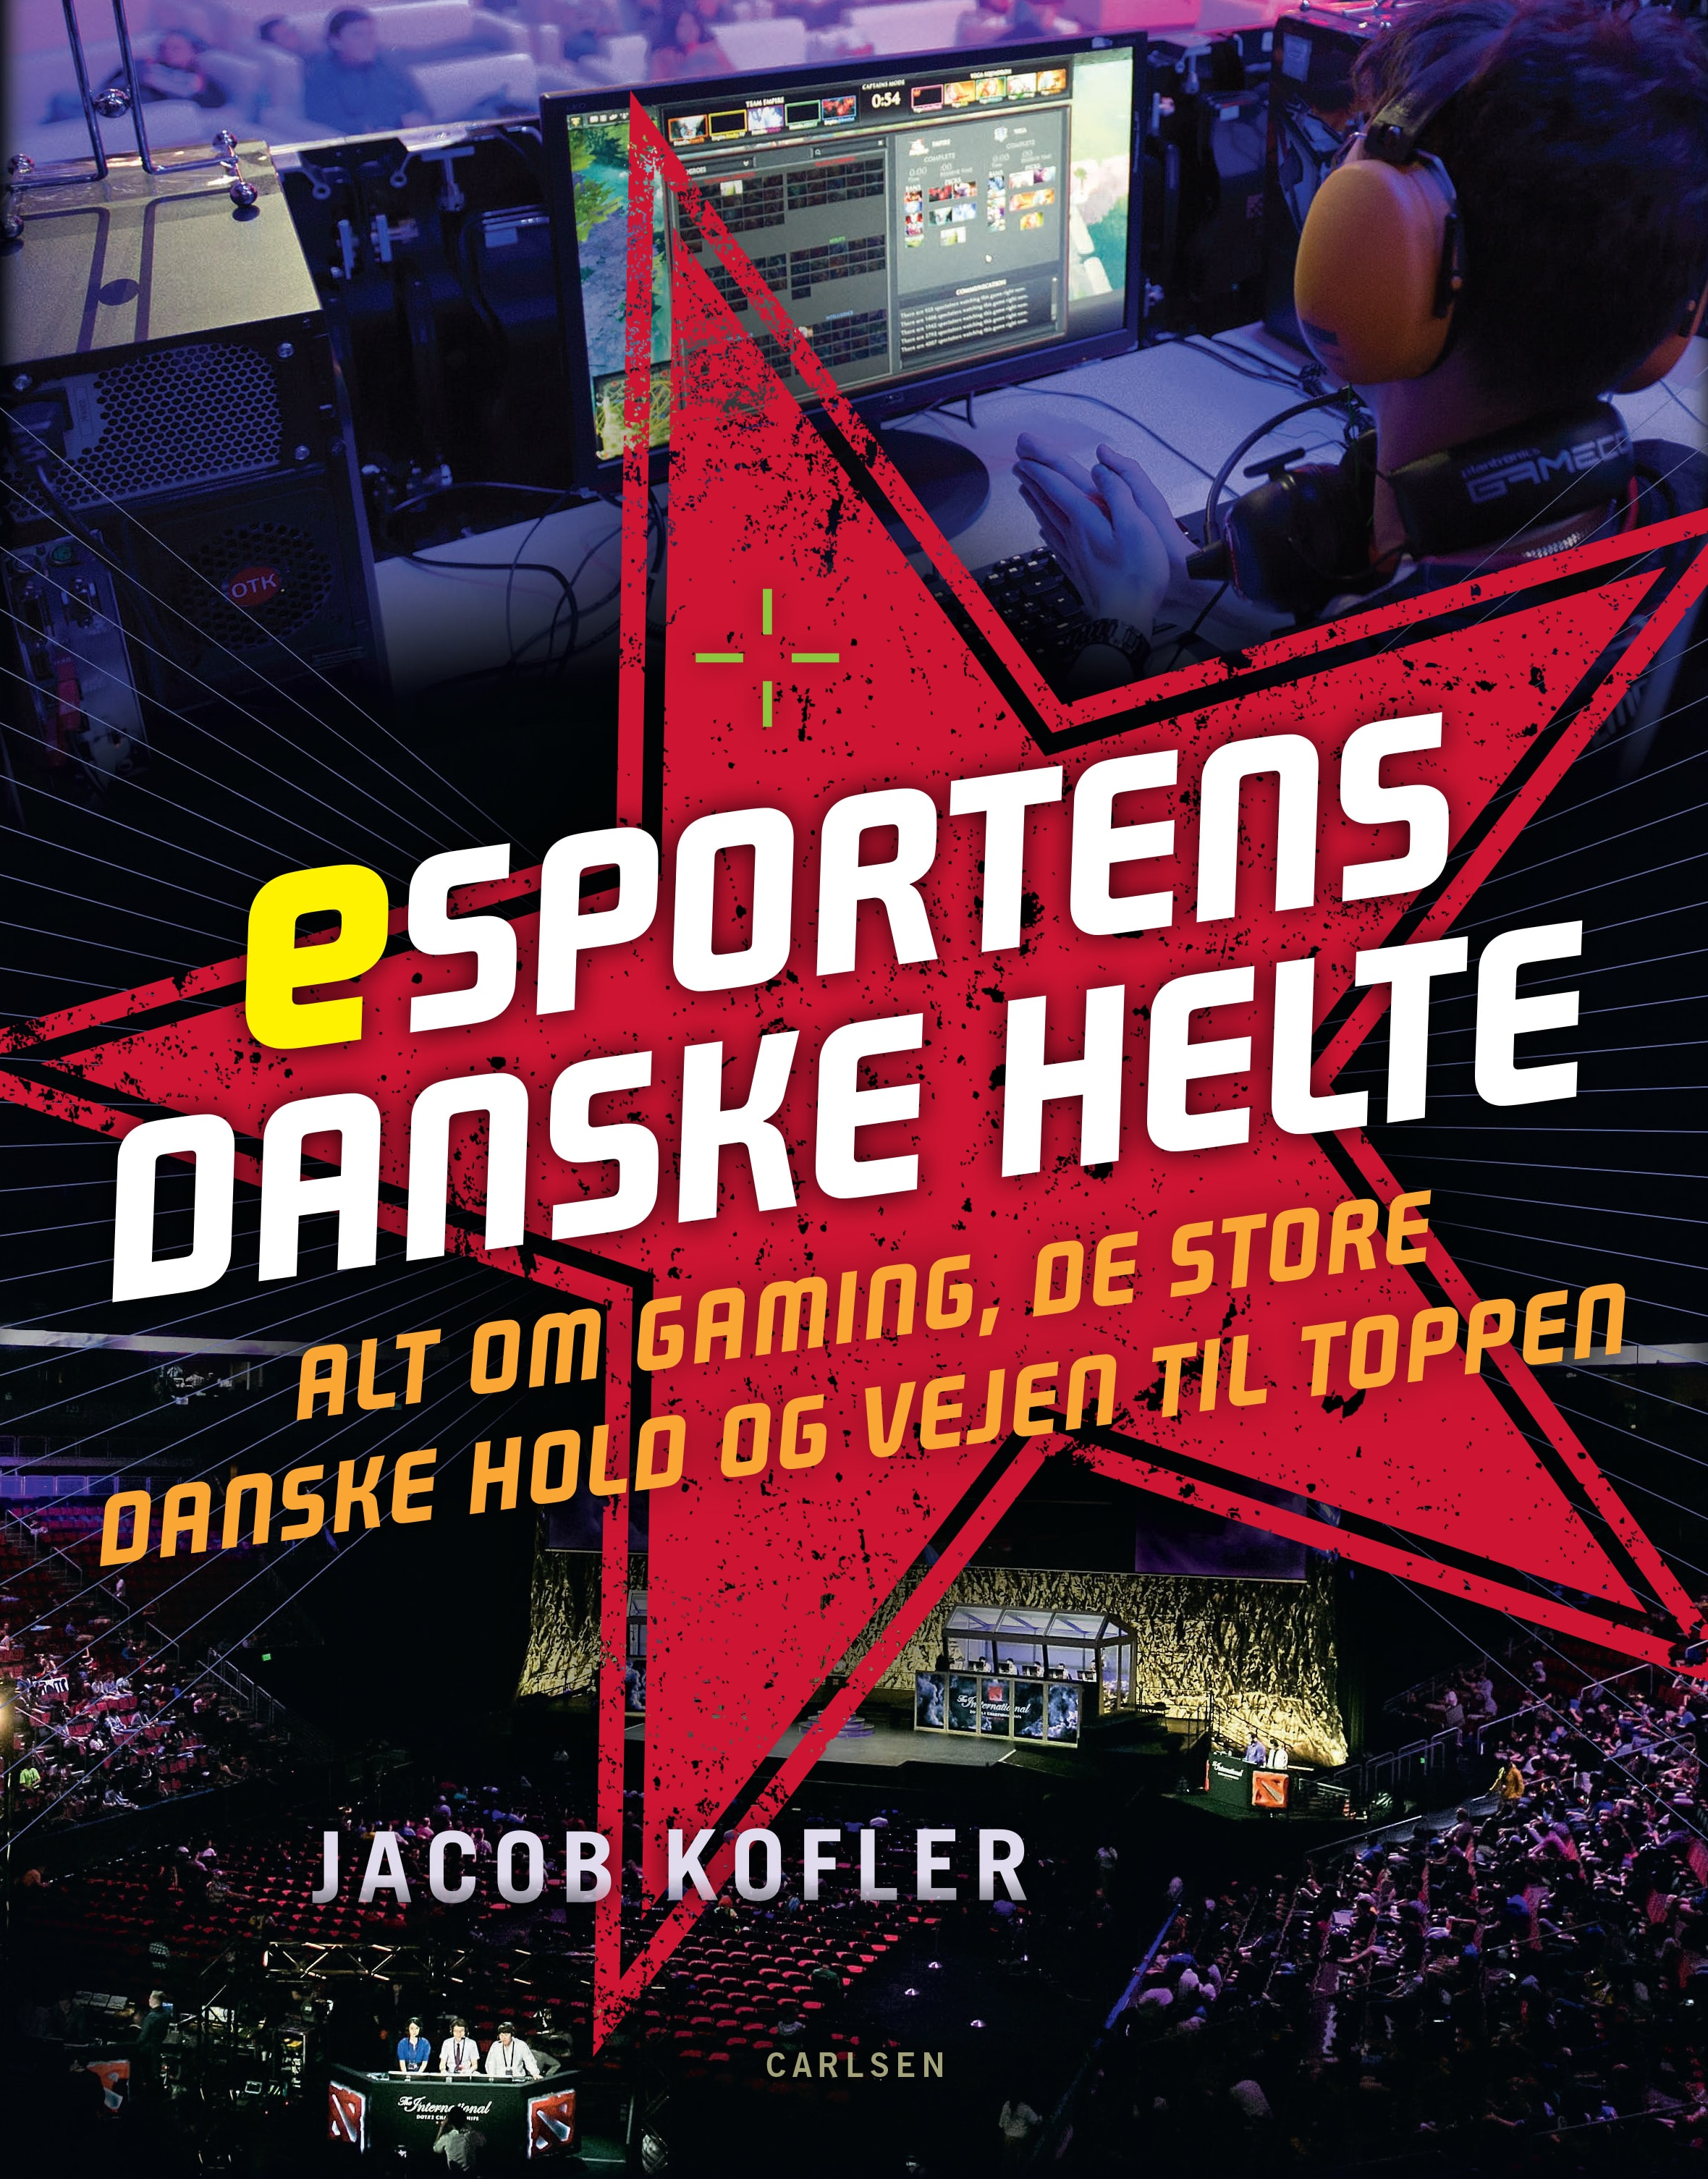 Esportens danske helte, Astralis, astralis, Jacob Kofler, esport, gaming, counter strike, CS:GO, global offensive, major, north, dupreeh, gla1ve, zonic, bøger om coputerspil, computerspil, lan party, dota, league of legends